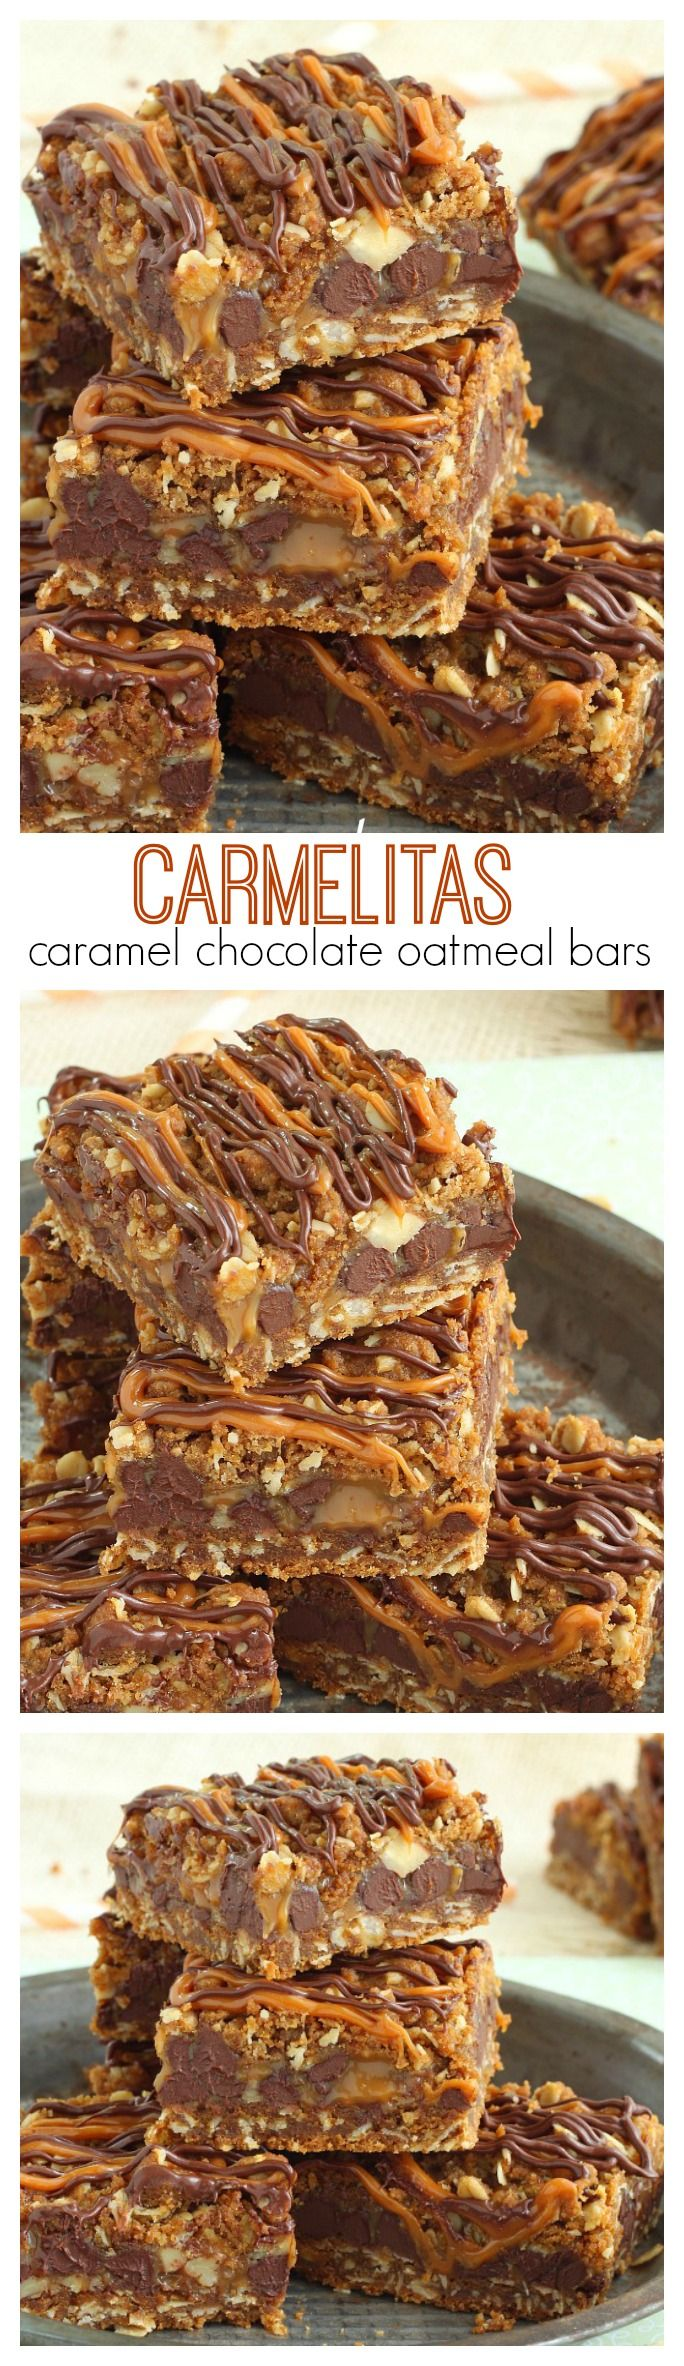 Easy to make oatmeal cookie bars filled with gooey caramel and oozing chocolate.